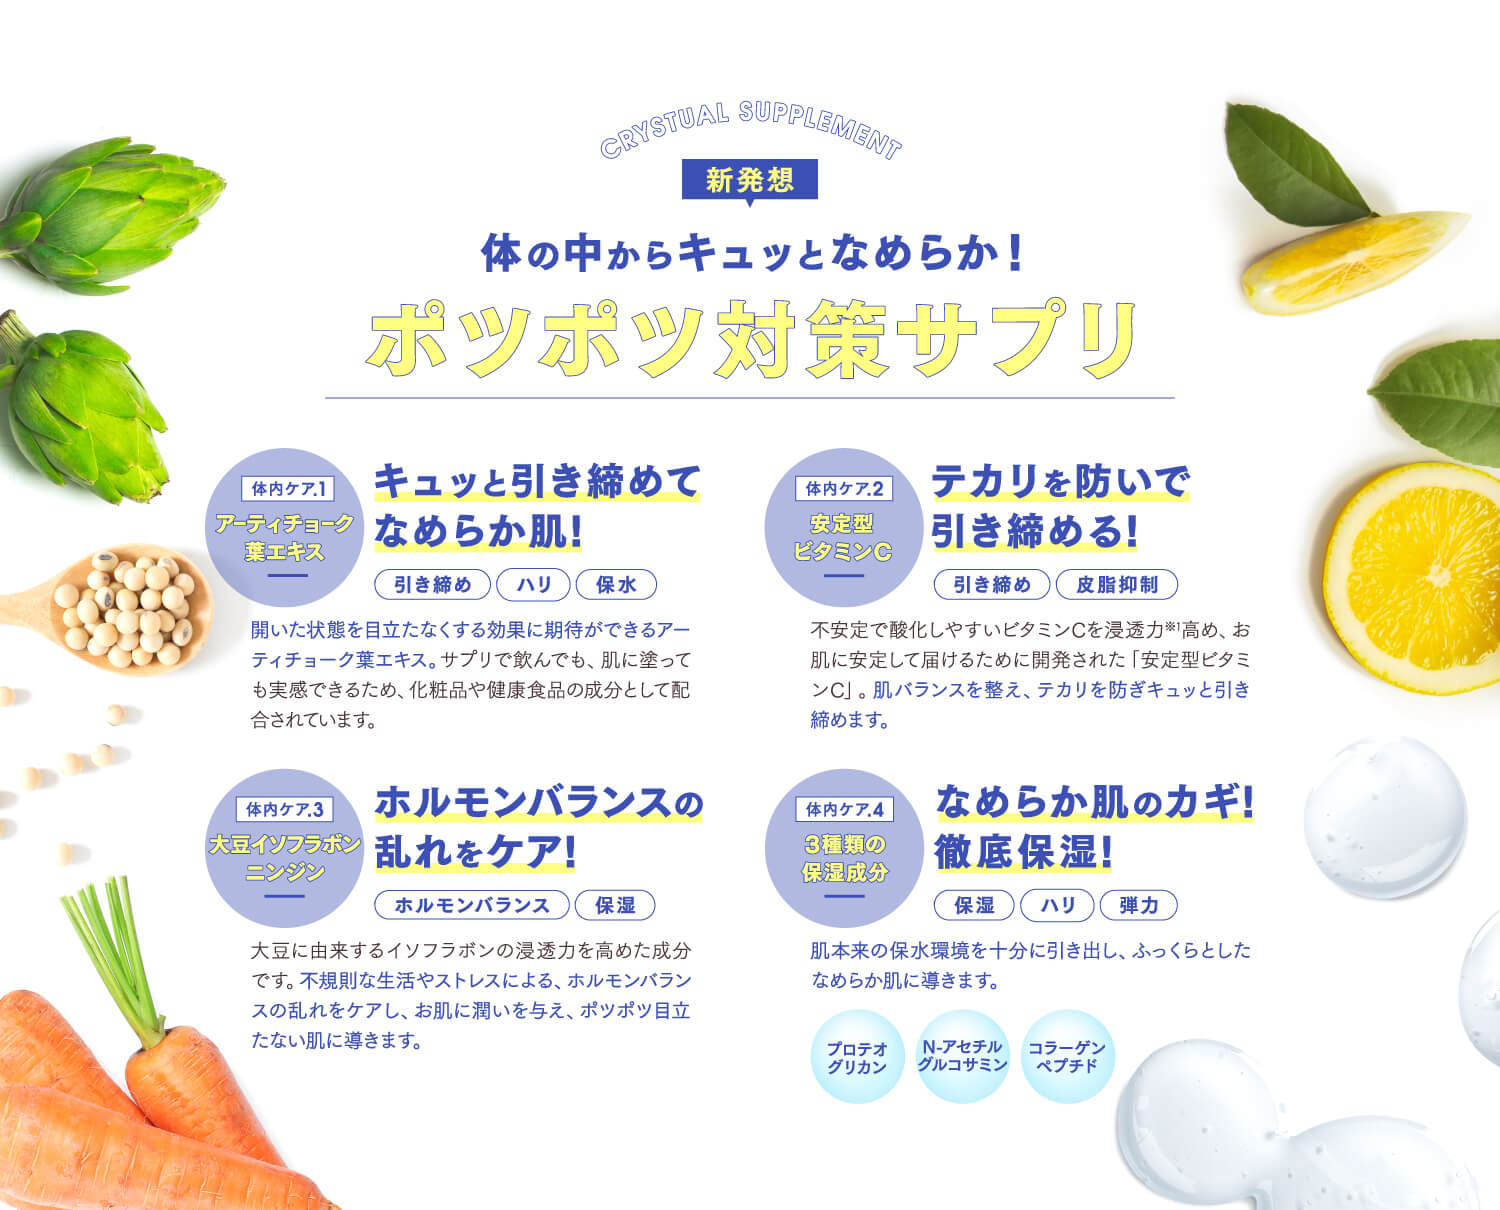 CRYSTUAL CLEAR SOAP・CRYSTUAL SUPPLEMENT 新発想 体の中からキュッとなめらか!ポツポツ対策サプリ